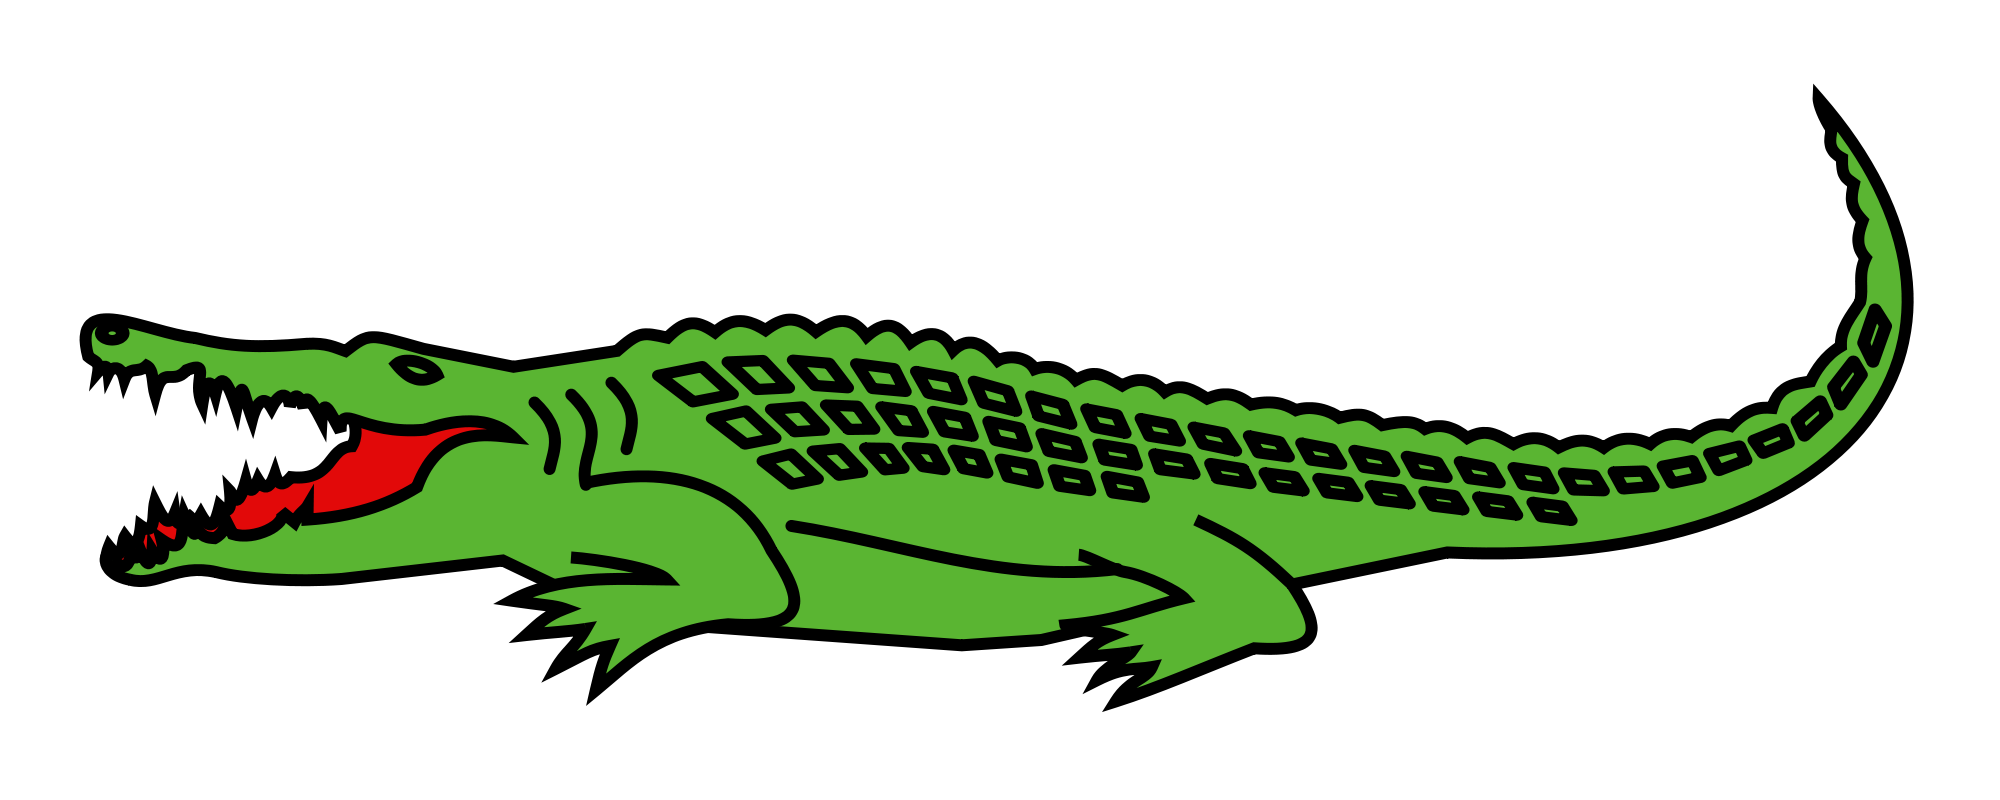 Vector alligator svg. File h raldique meuble vector free download